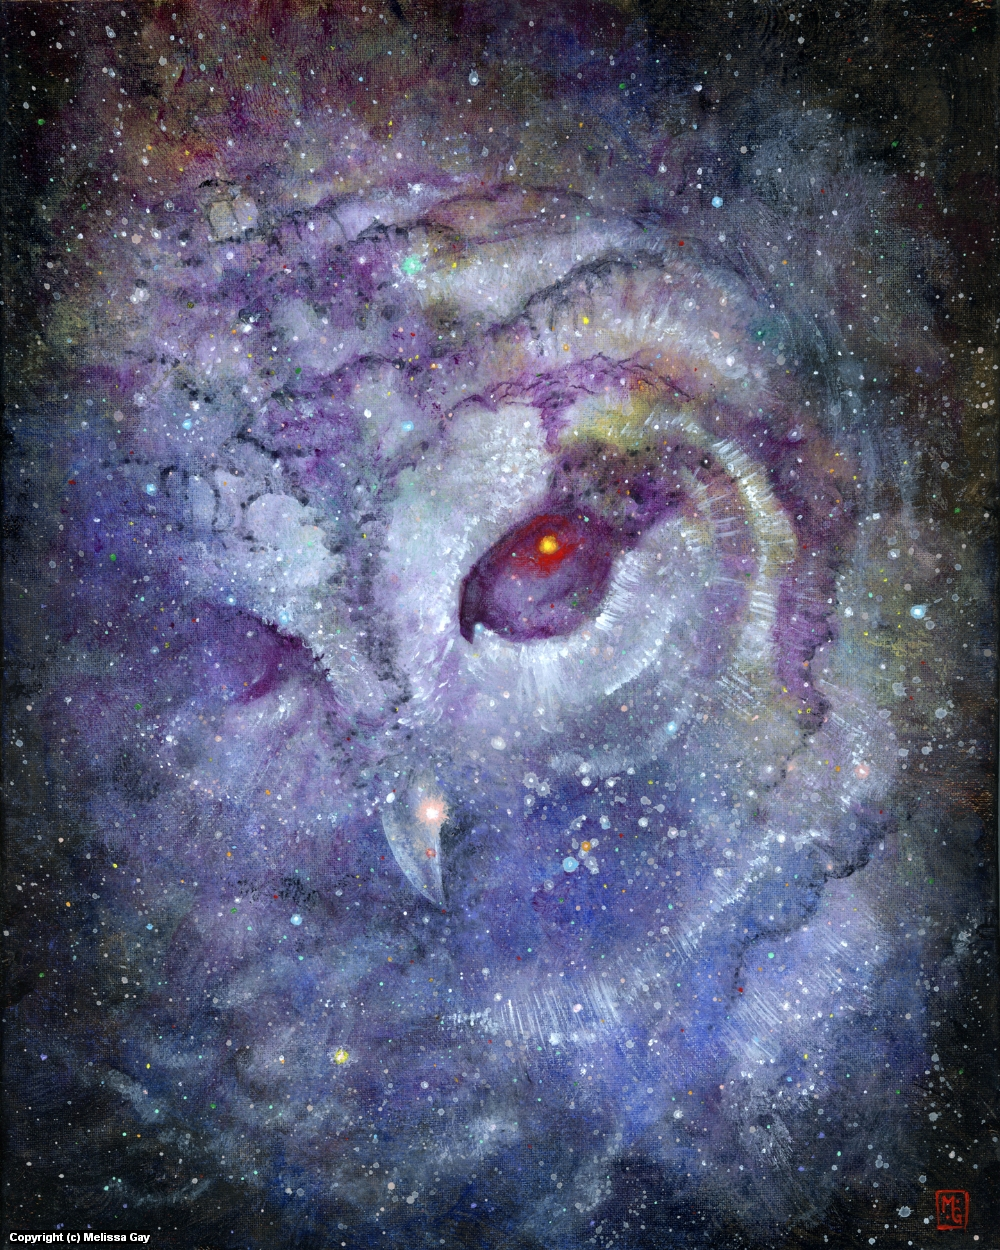 The Strix Nebula Artwork by Melissa Gay